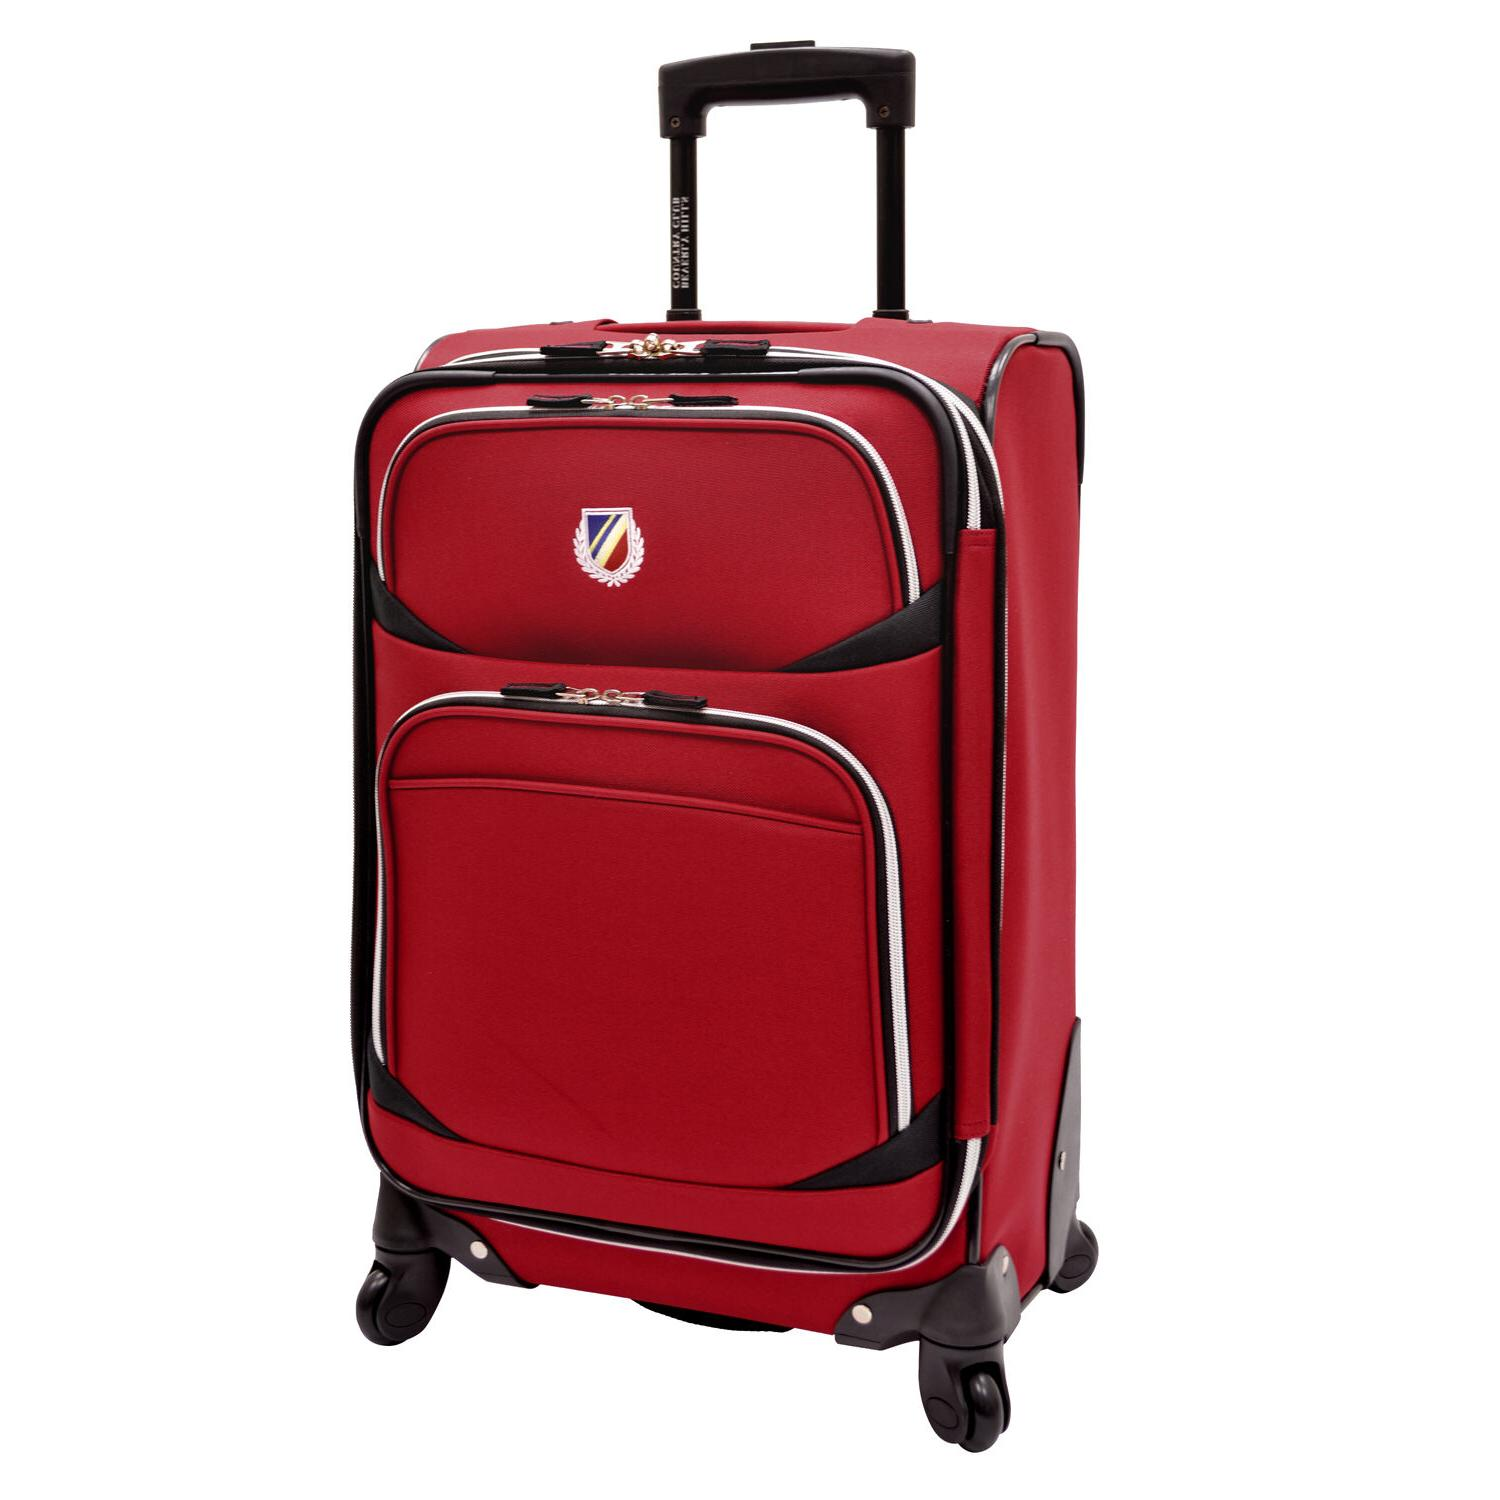 Beverly Hills Country Red San Spinner Duffel Luggage